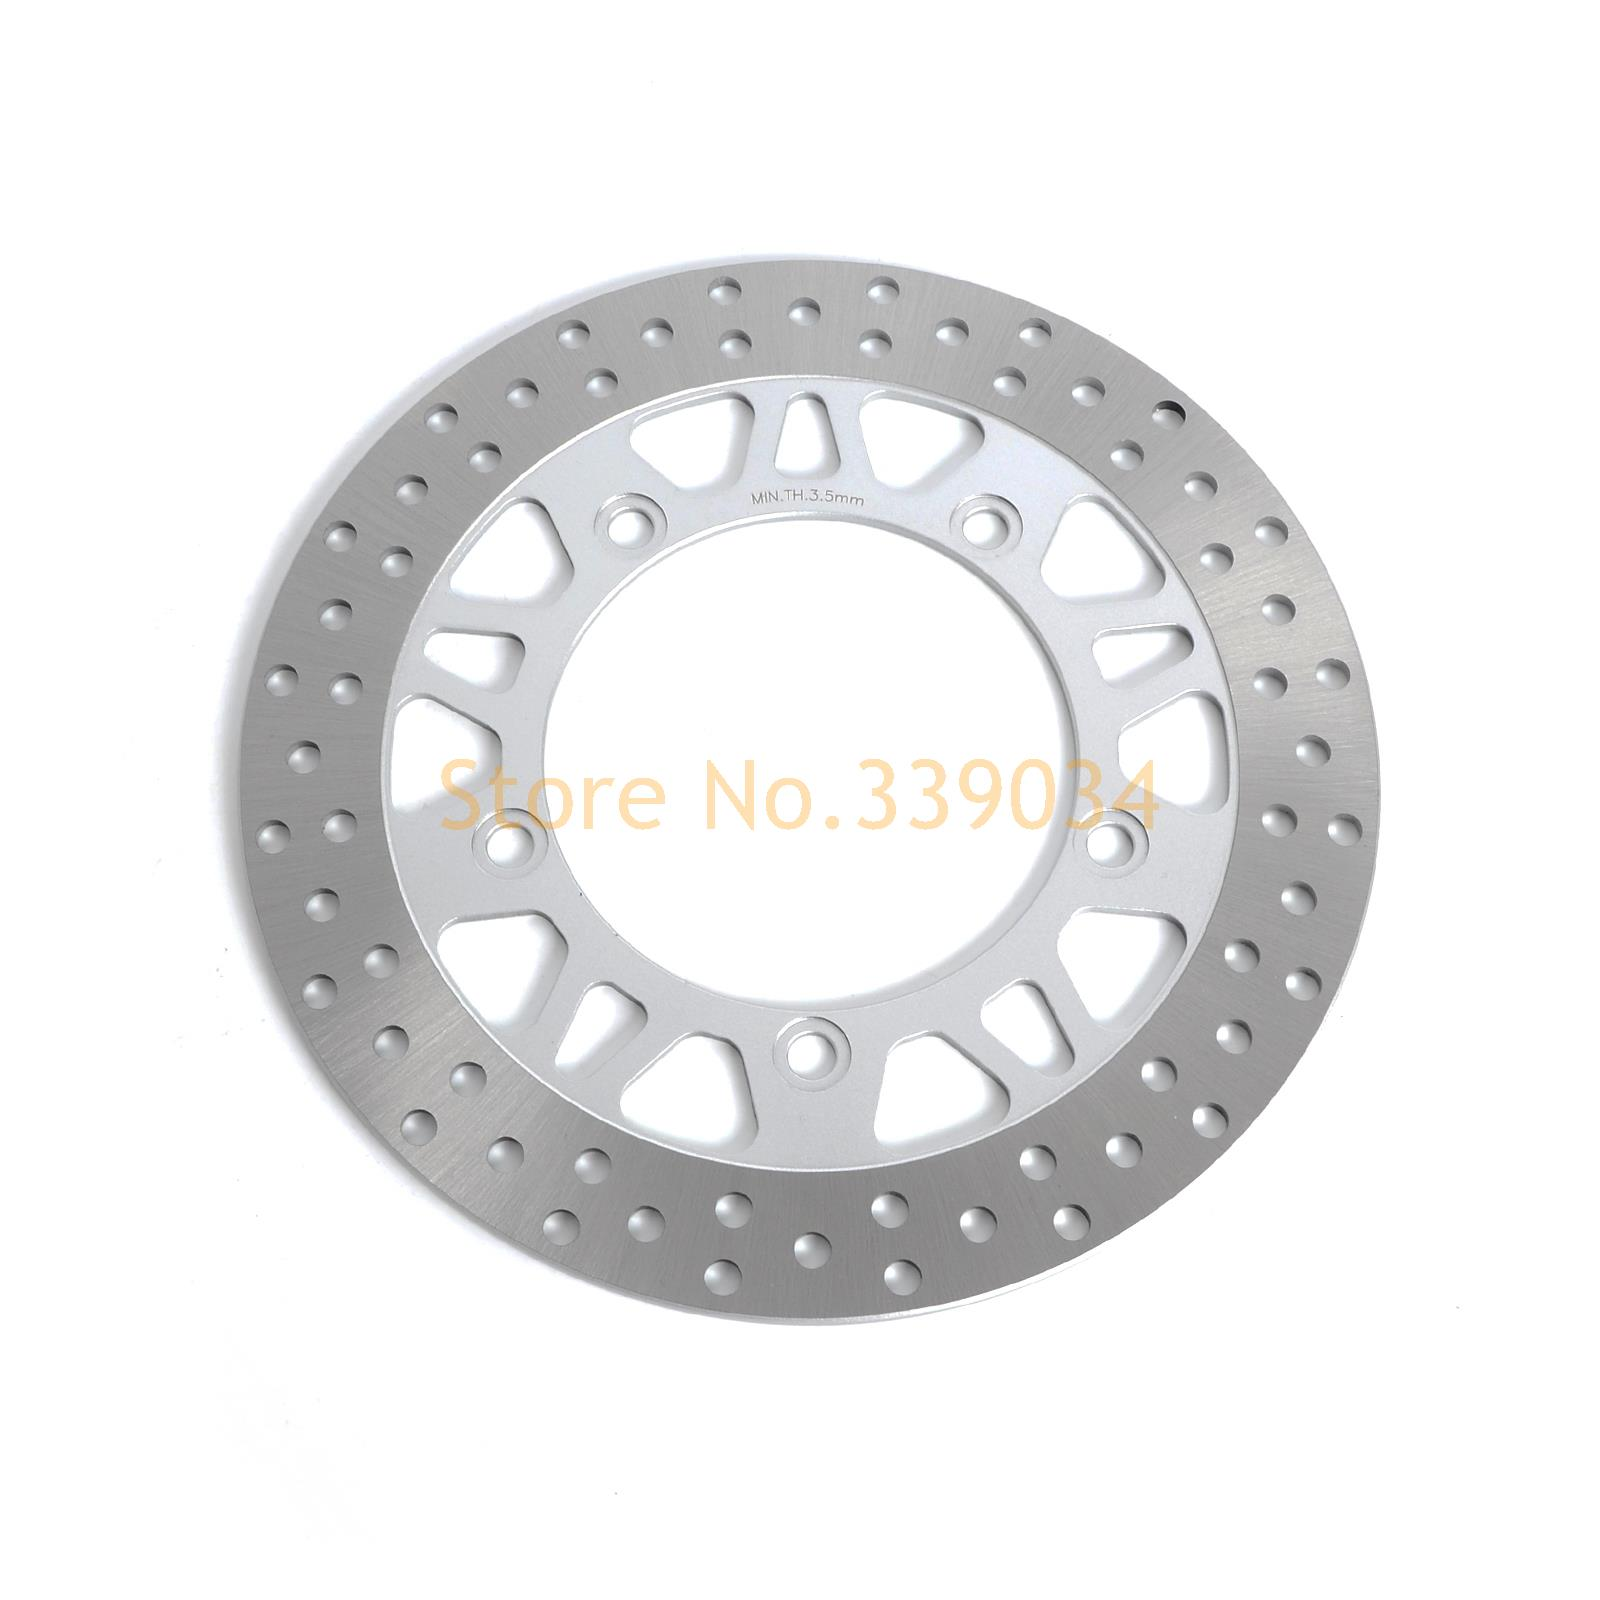 New Motorcycle Front  Rotor Brake Disc For Suzuki  AN 250  400 K7/ZK7/K8/ZK8/K9/L0/L1/L2/L3 Burgman/Non ABS/Skywave 07-13 keoghs motorcycle brake disc brake rotor floating 260mm 82mm diameter cnc for yamaha scooter bws cygnus front disc replace